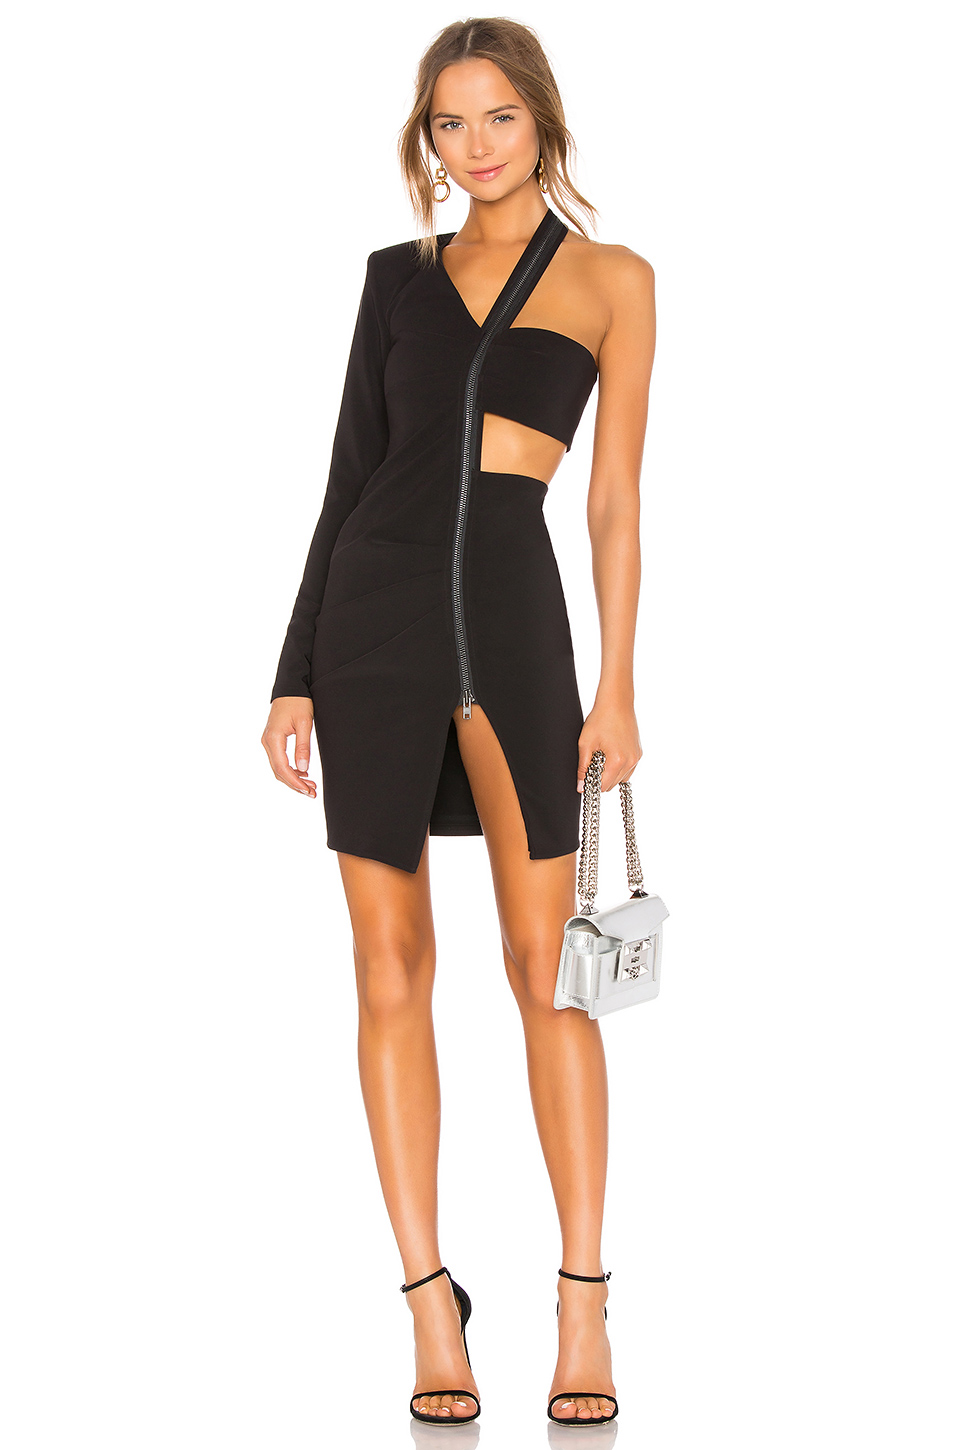 Michael Costello x Revolve Cut Out Blazer Dress.jpg